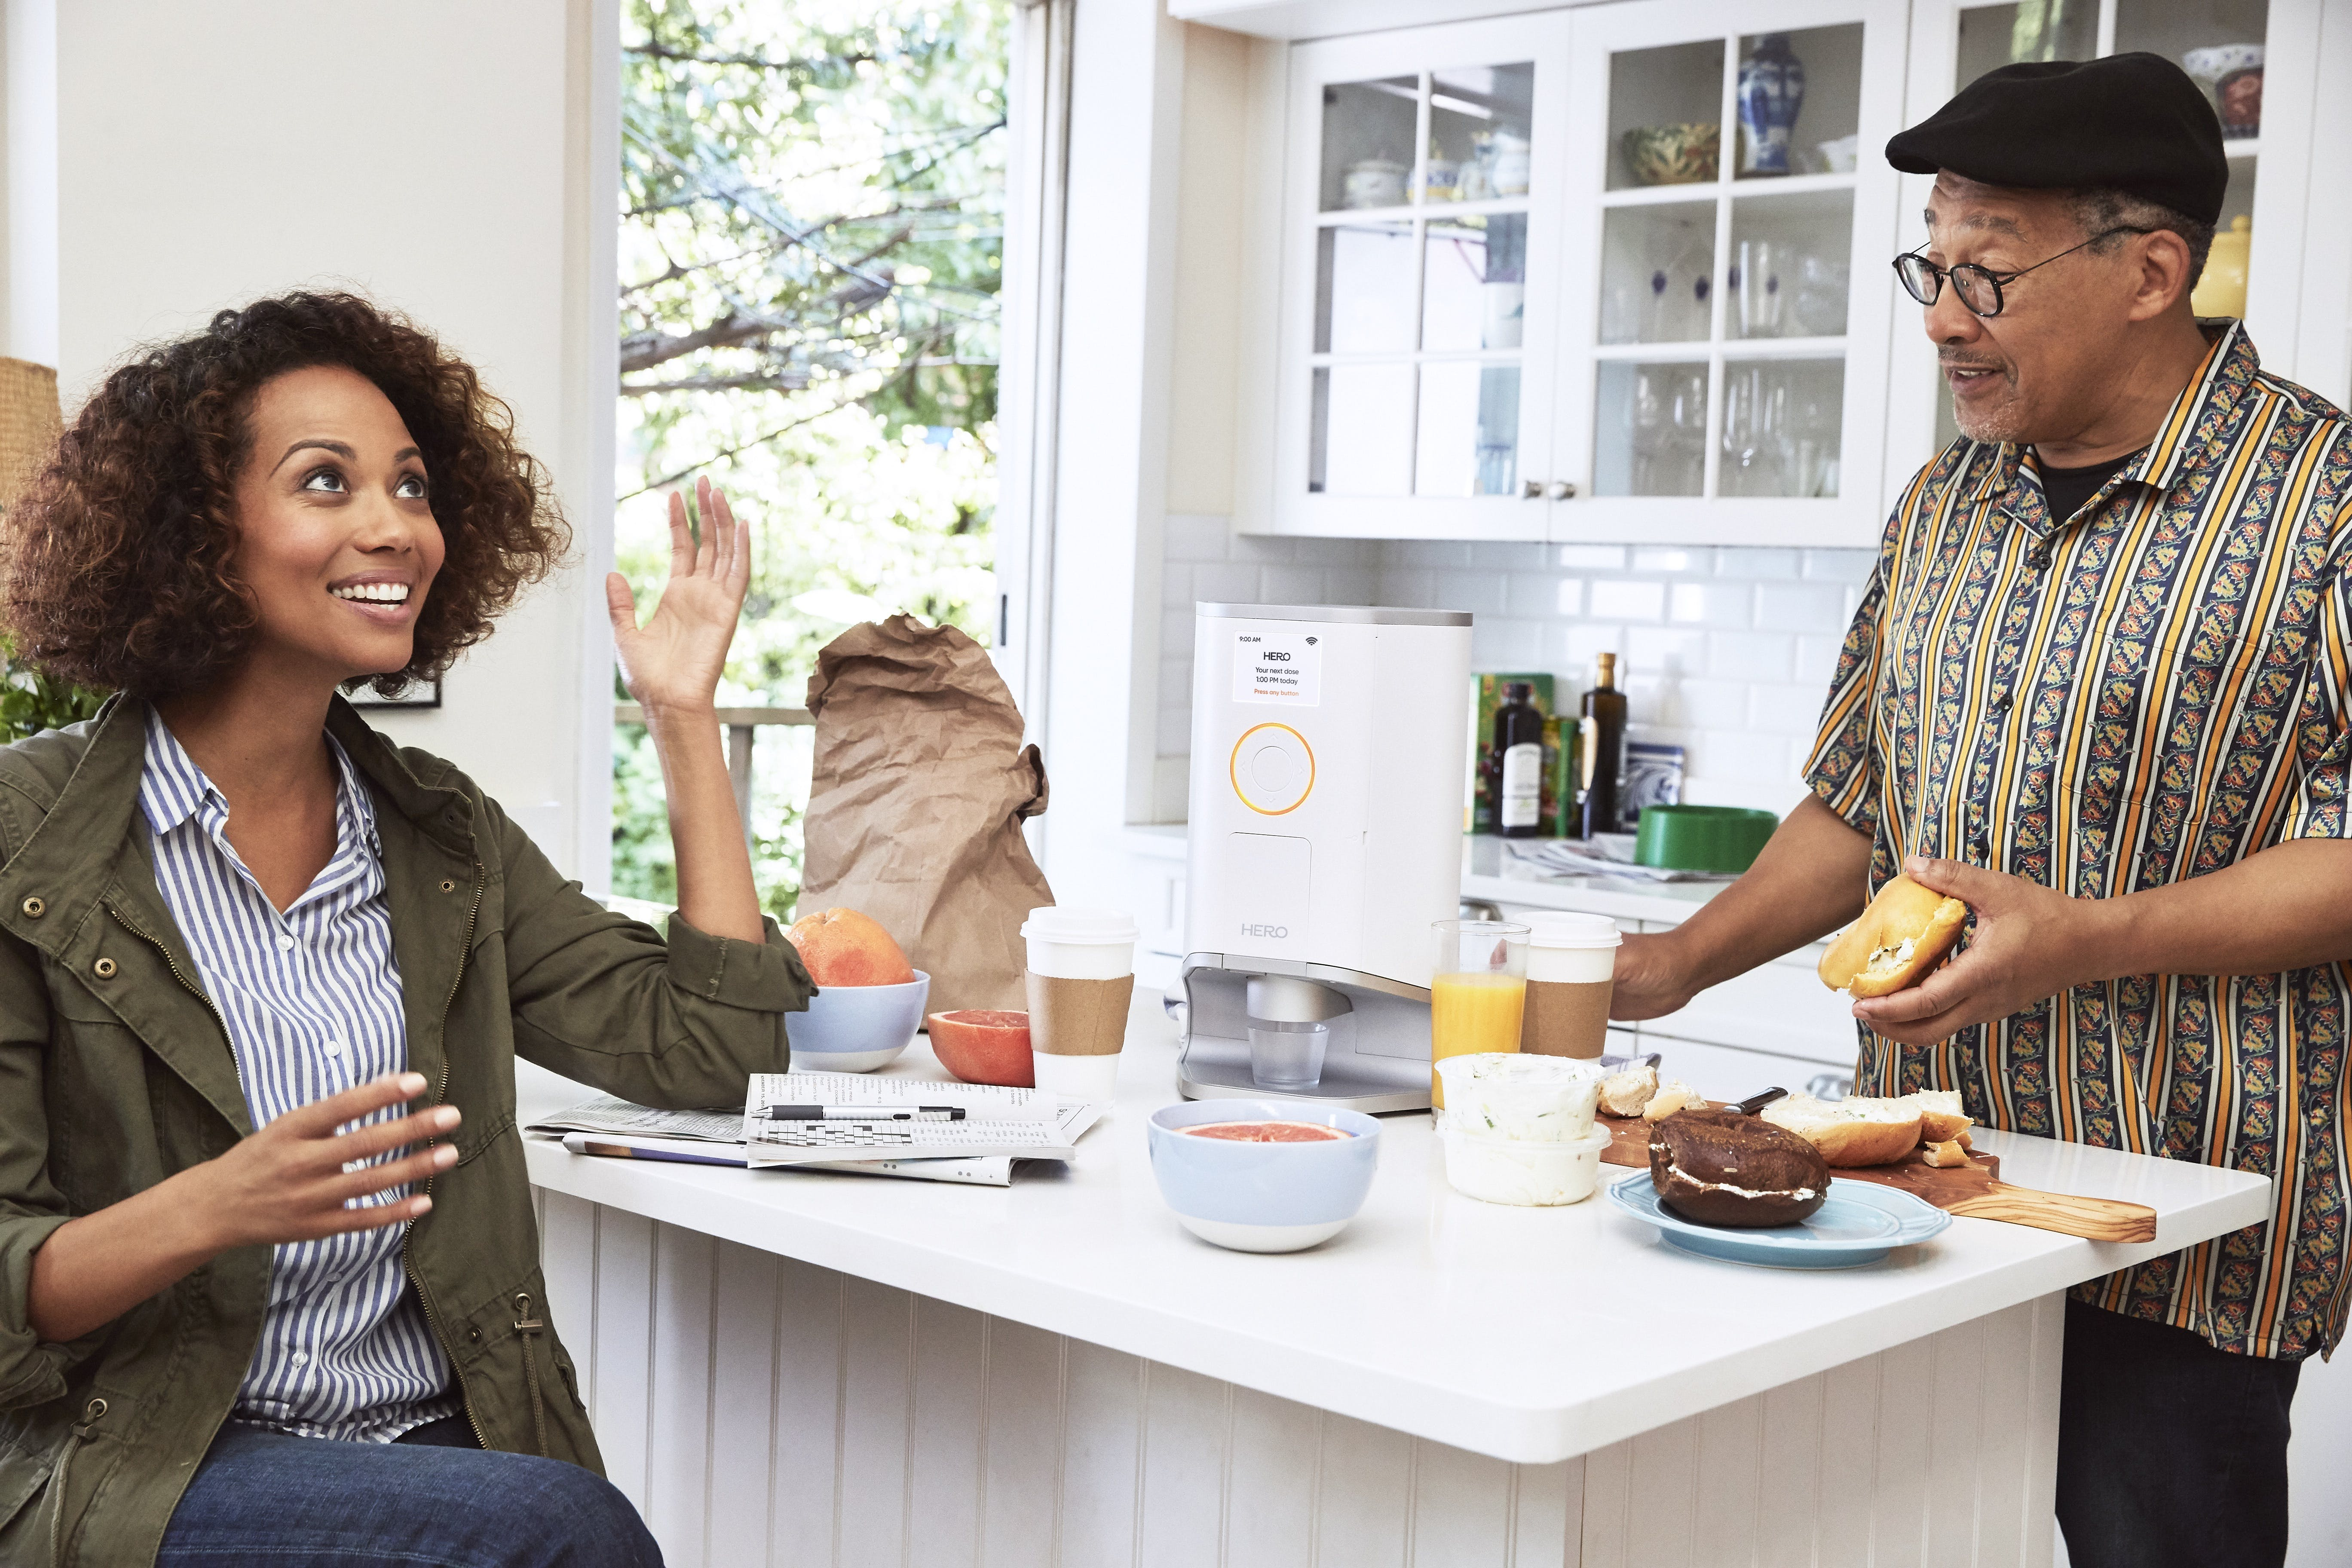 A father and daughter conversing and preparing breakfast around a kitchen island, with the Hero smart device in between them on the counter.